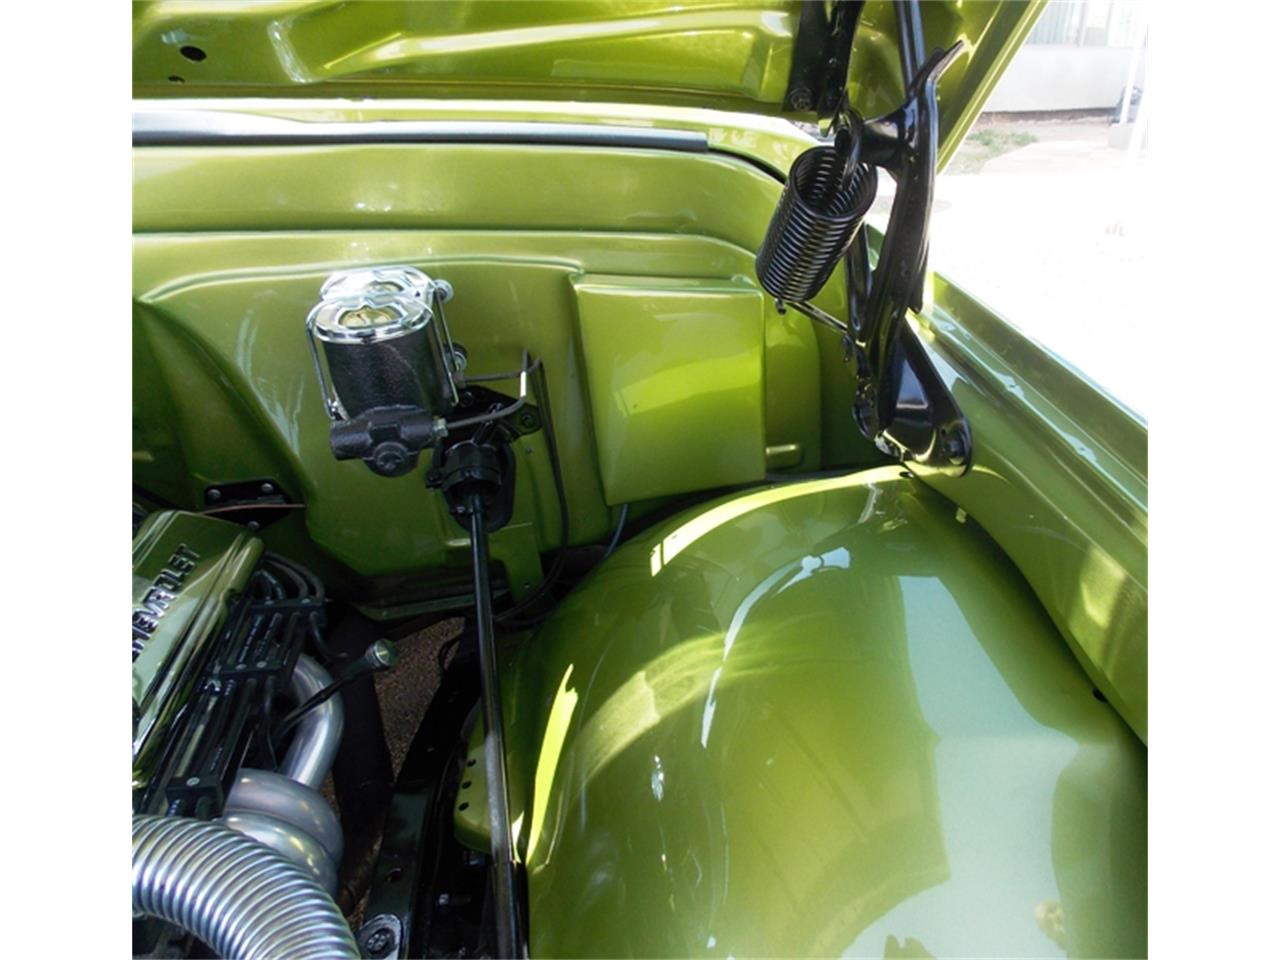 Large Picture of '70 Chevrolet Fleetside - $44,500.00 Offered by Old Iron AZ LLC - N1DG